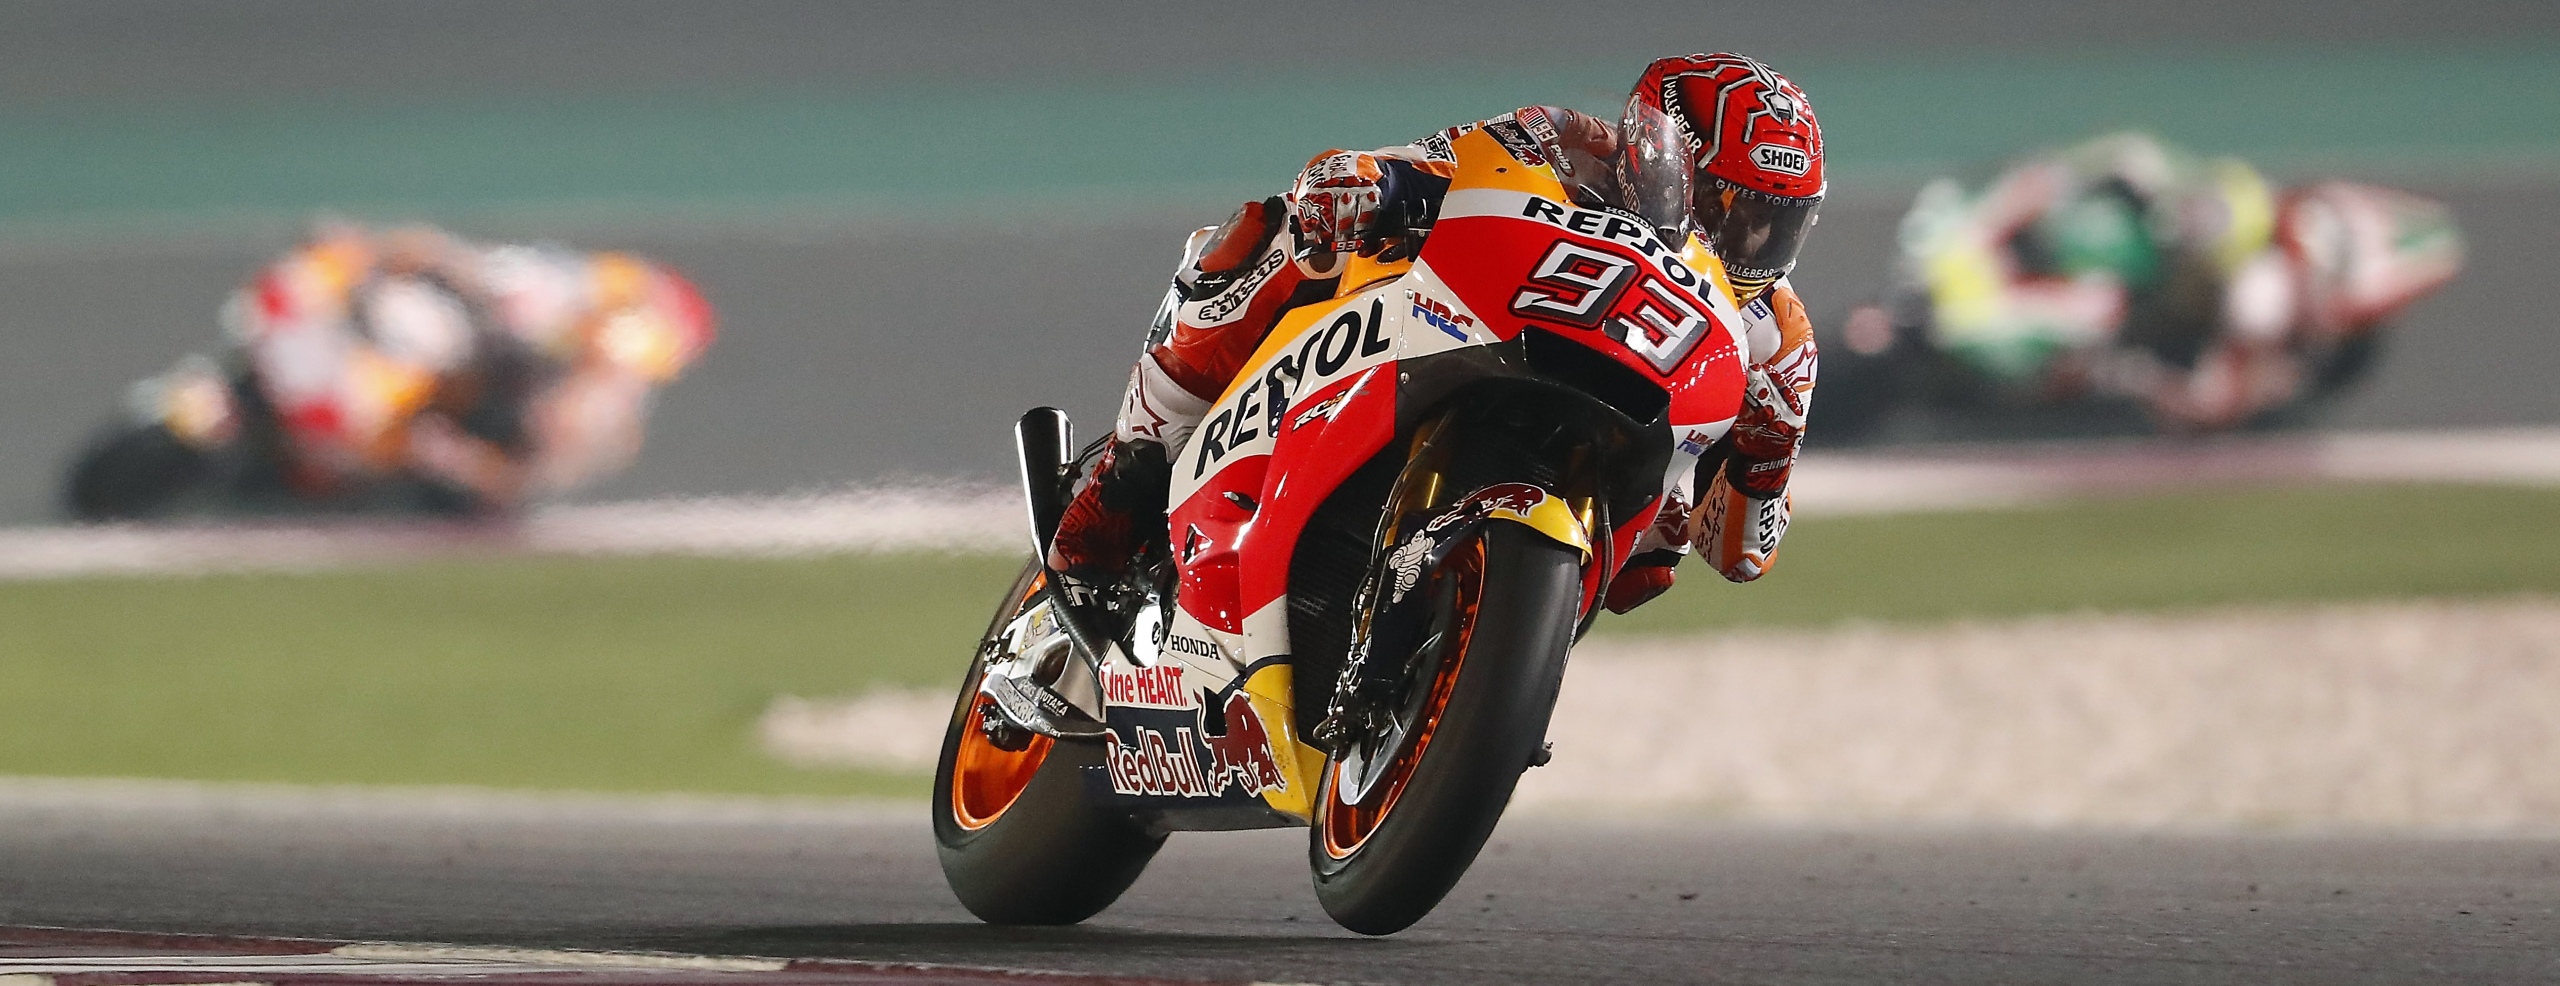 Marquez fourth, Pedrosa fifth in weather-affected Qatar evening